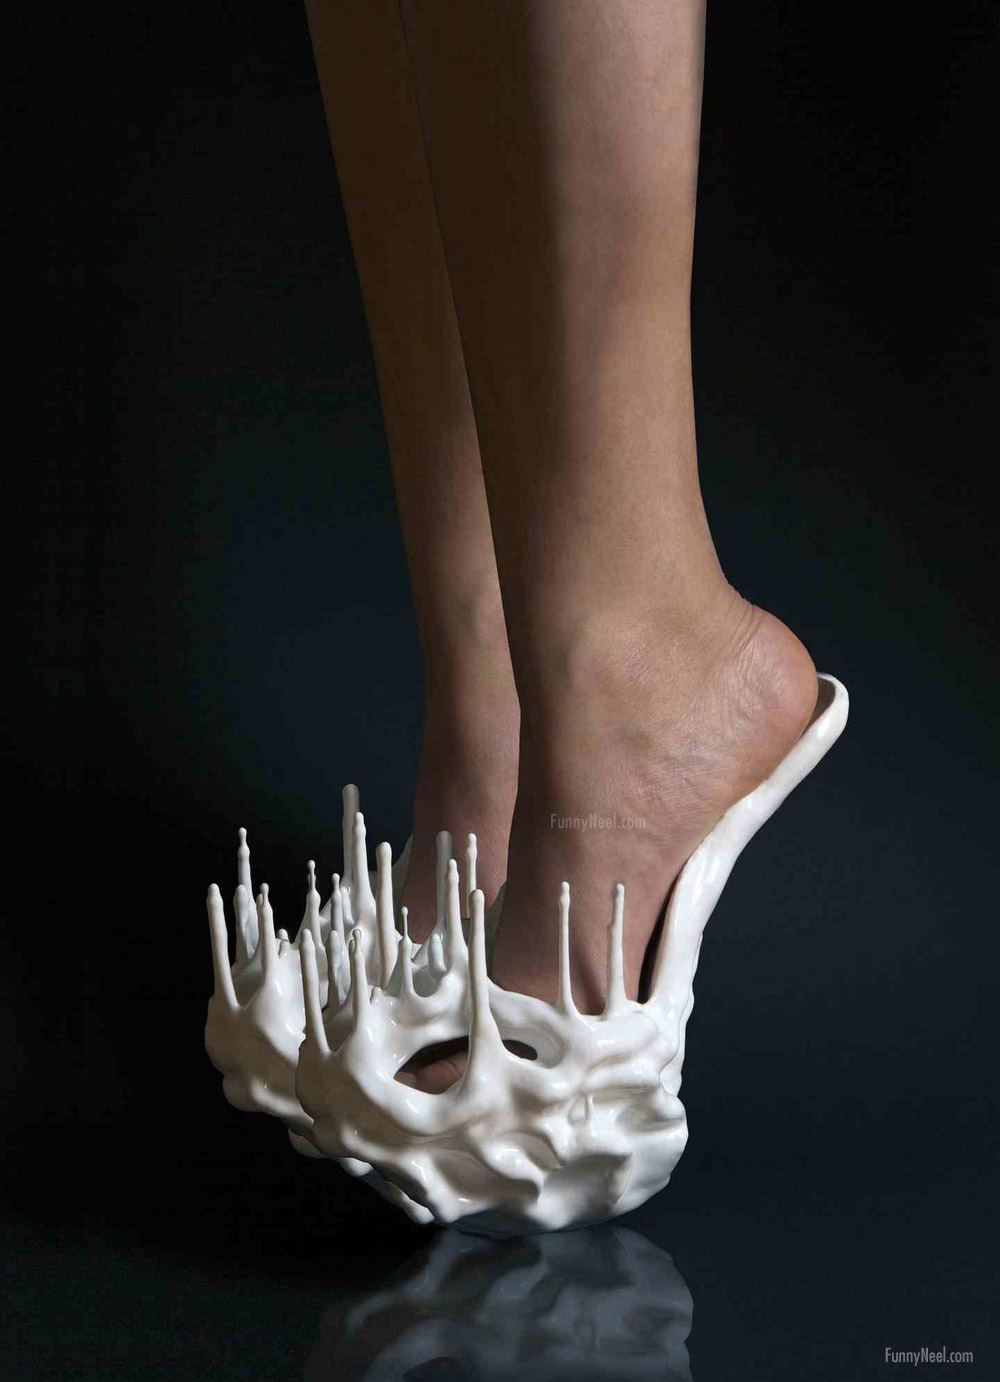 crazy heel shoe spike image